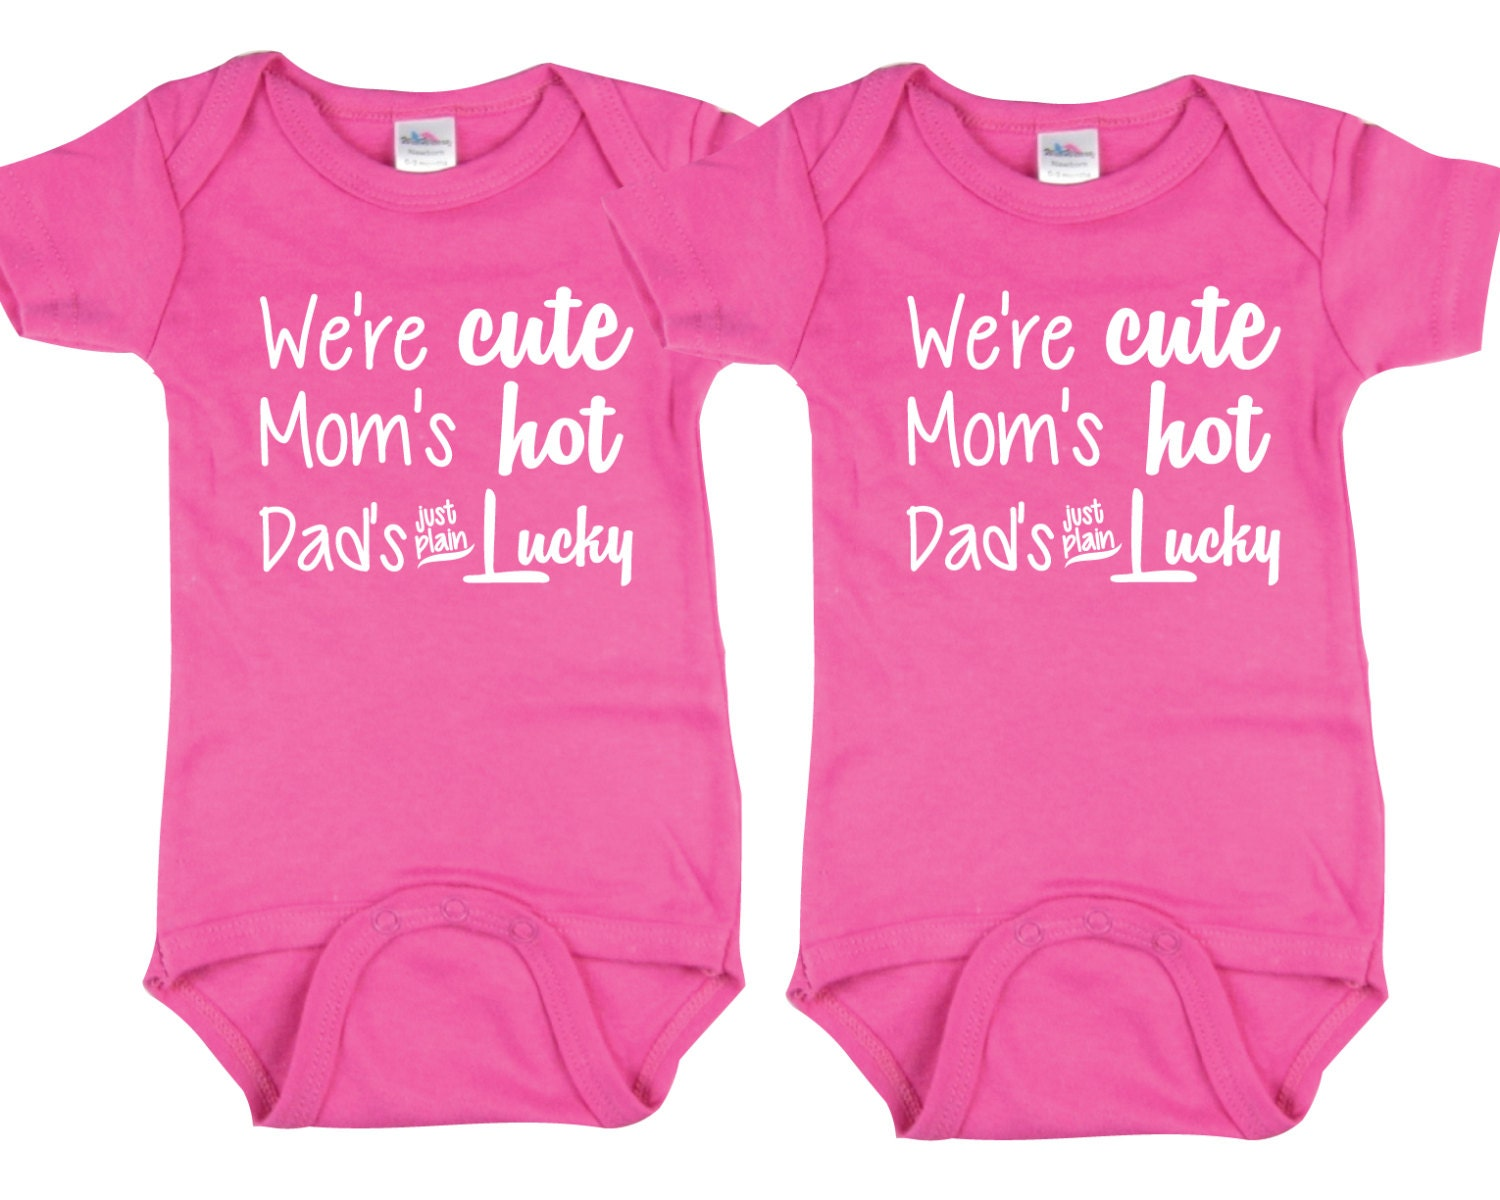 cute baby gift for twin girls we're cute mom's hot  etsy, Baby shower